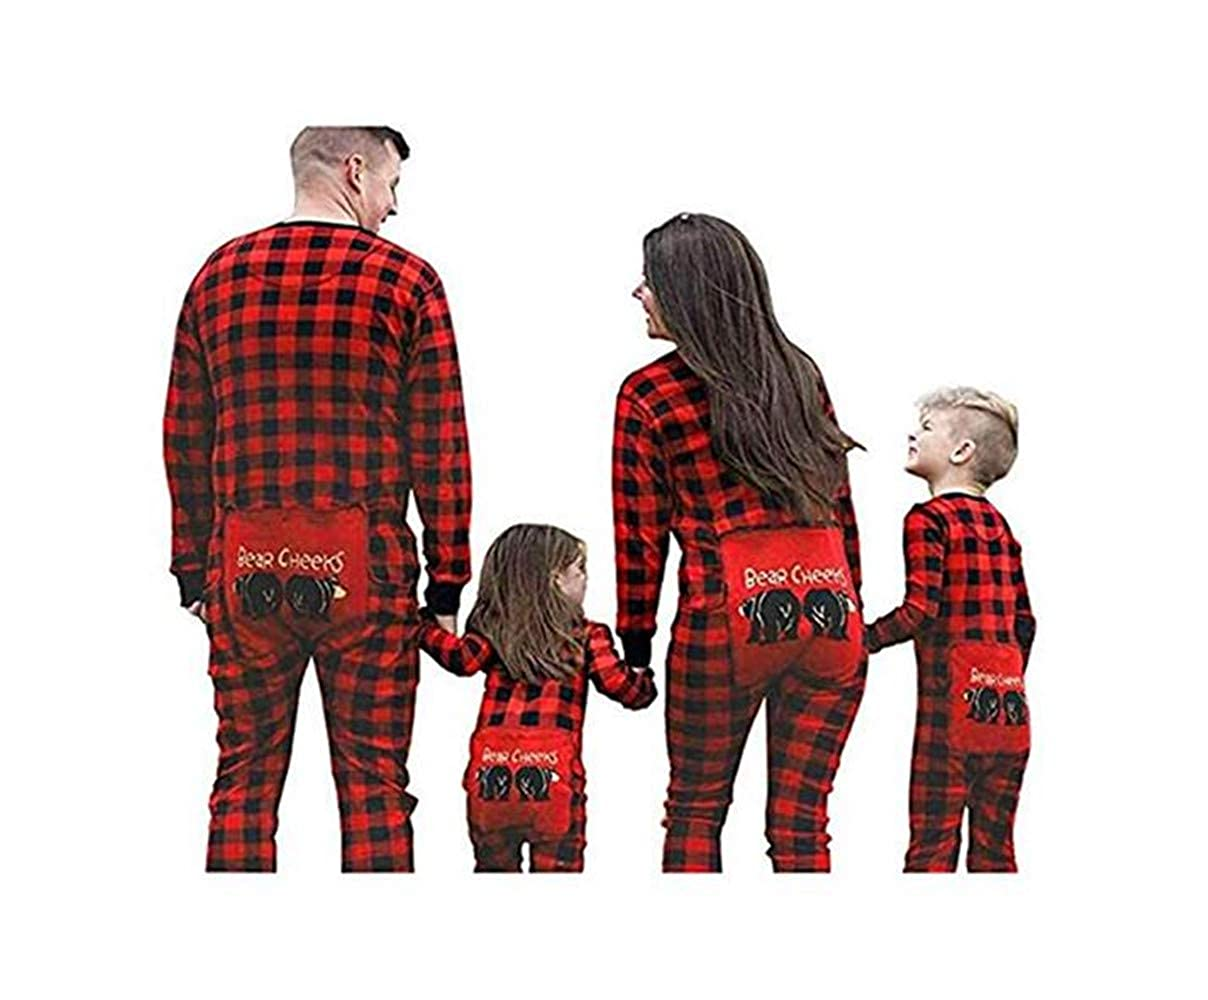 Happyjiu Family Matching Christmas Pajamas Long Sleeve Plaid Family Pajamas